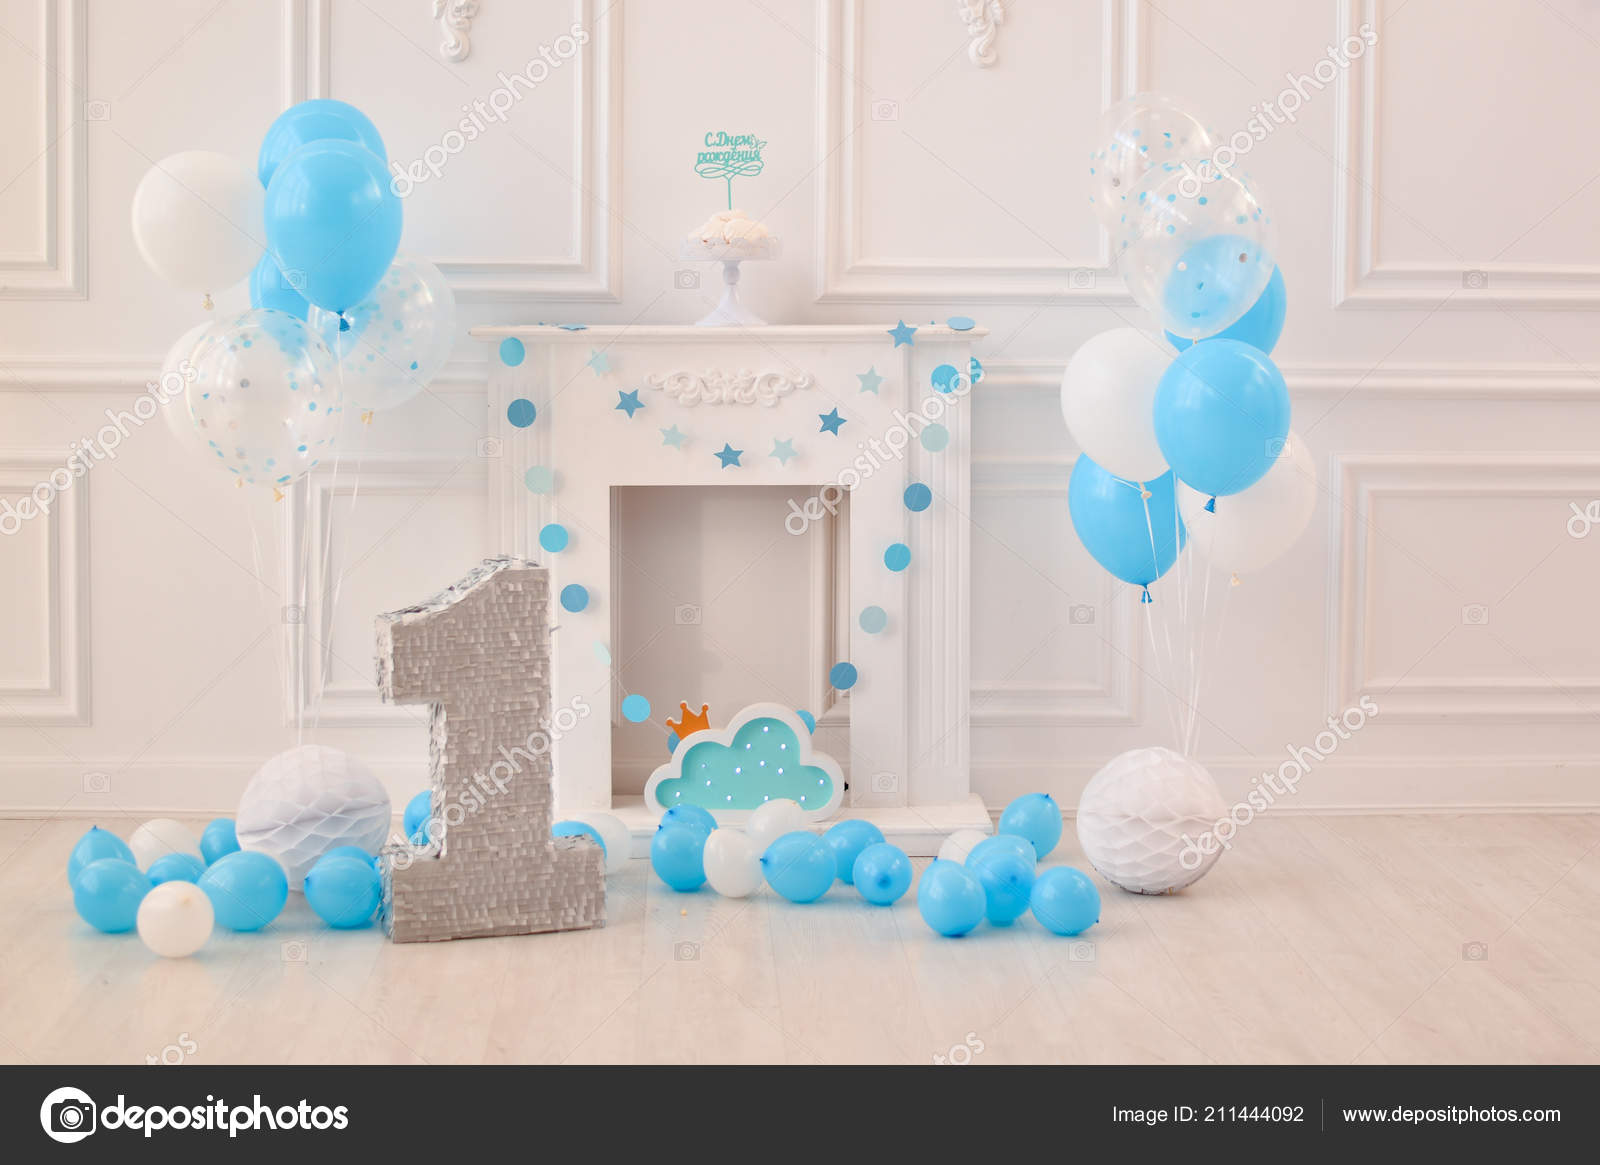 Children Birthday Decorations Holiday Party One Year Balloons Stock Photo